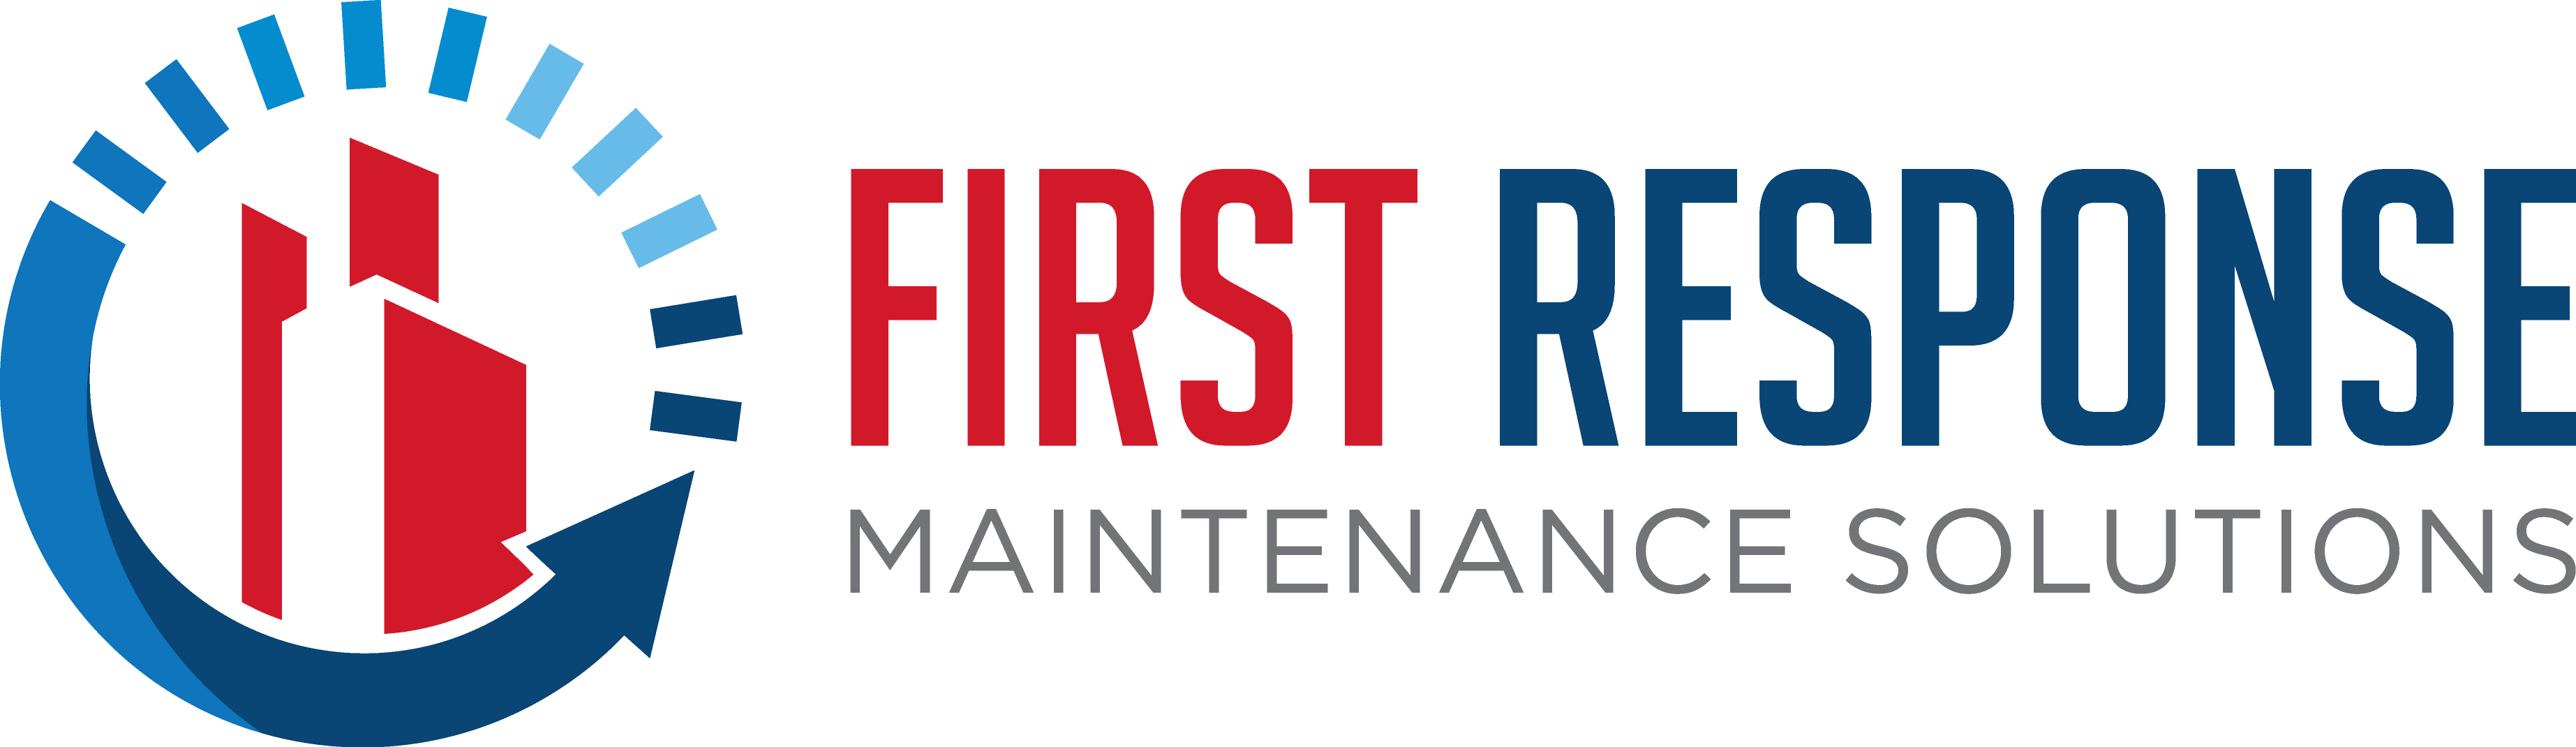 First Response Maintenance Solutions - Smart Strata | Body